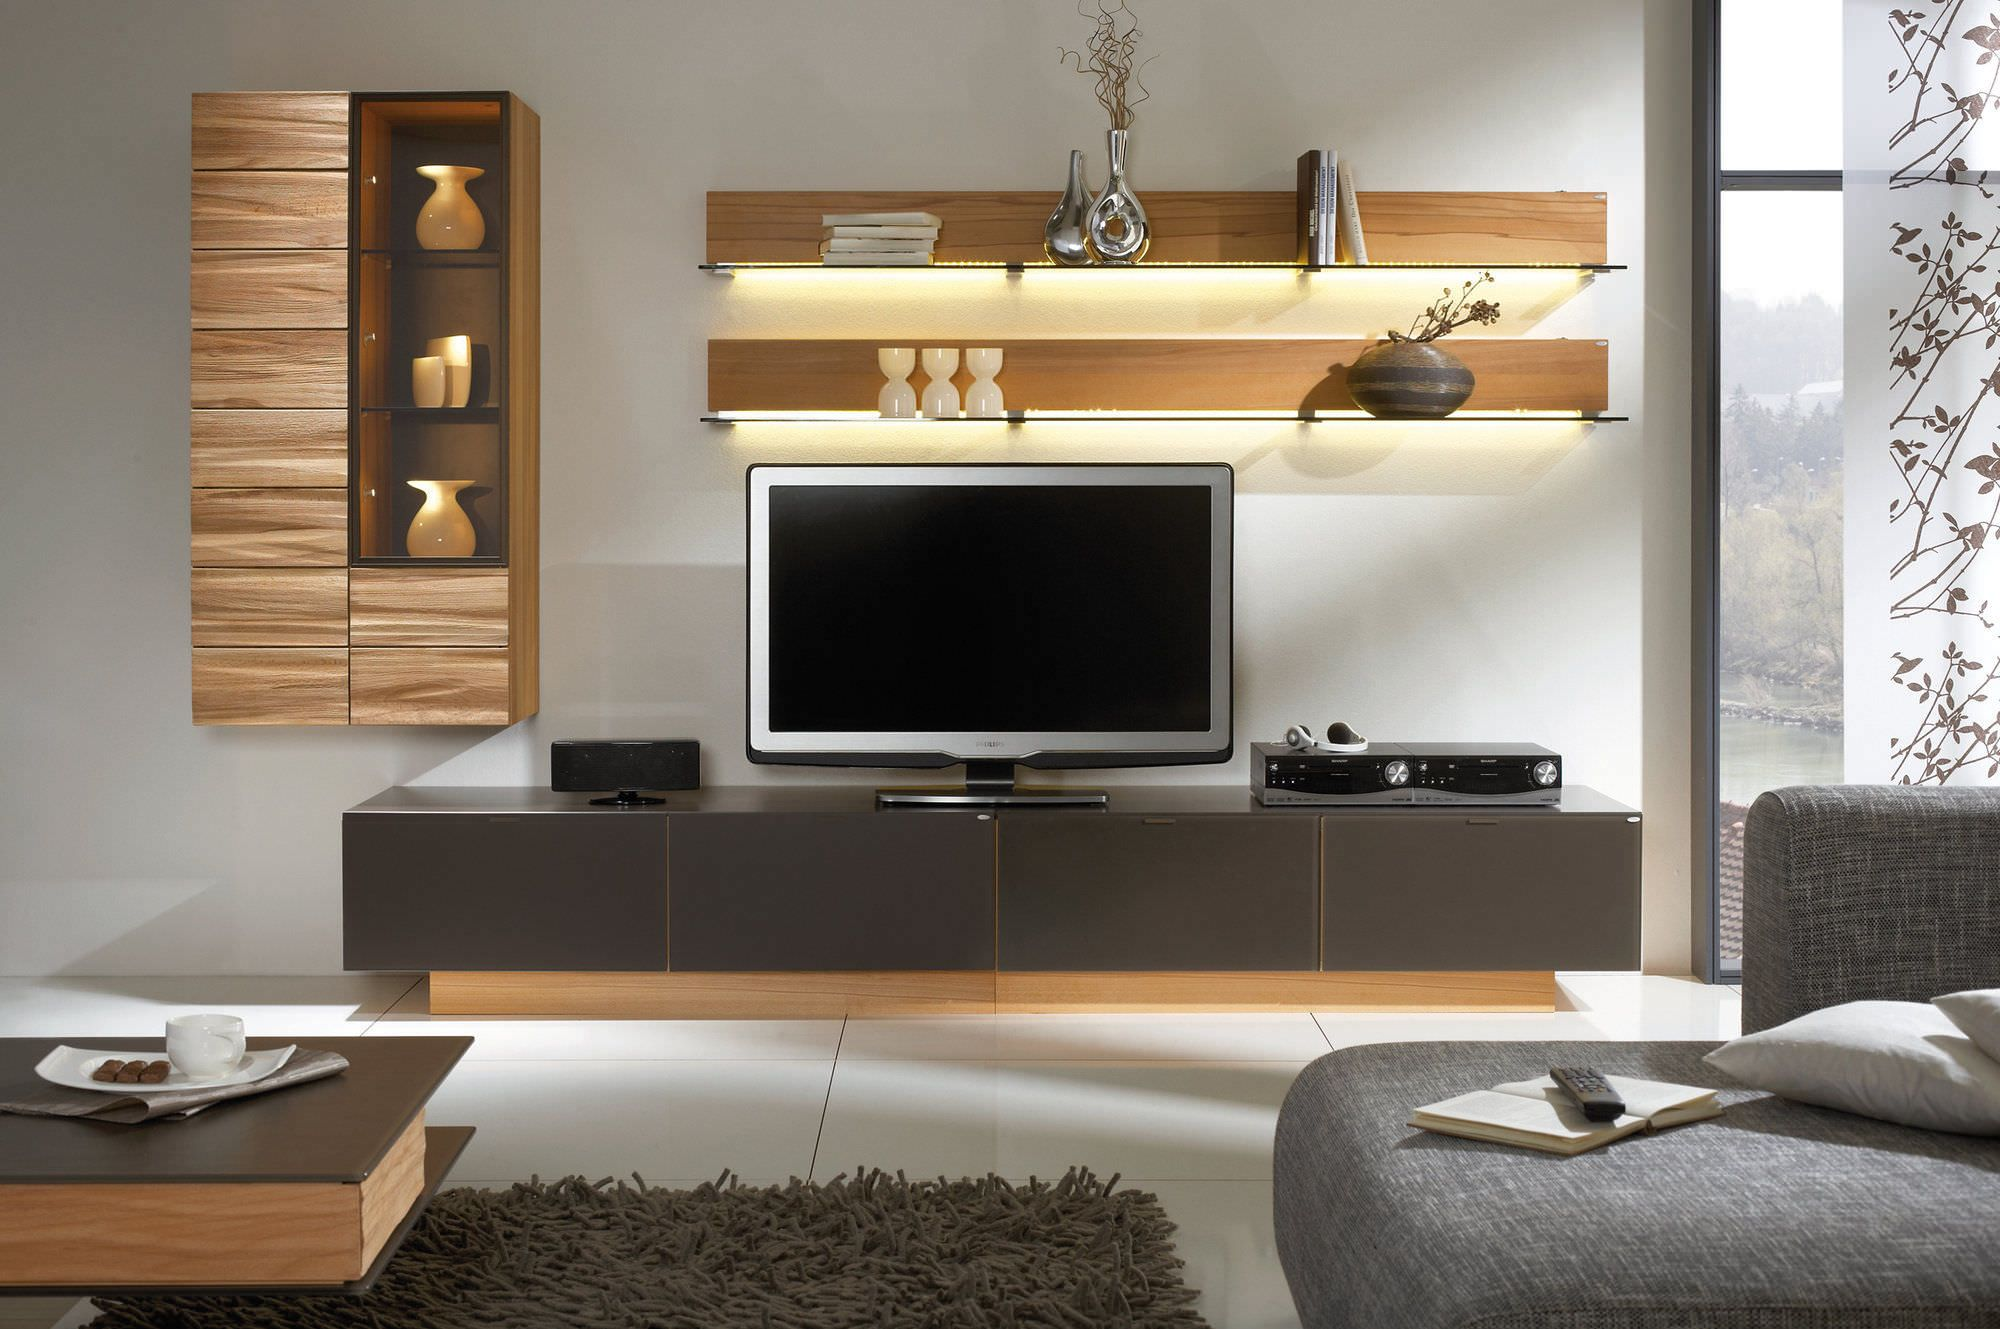 Awesome white brown wood glass cool design contemporary tv wall under storage wall racks cabinet grey